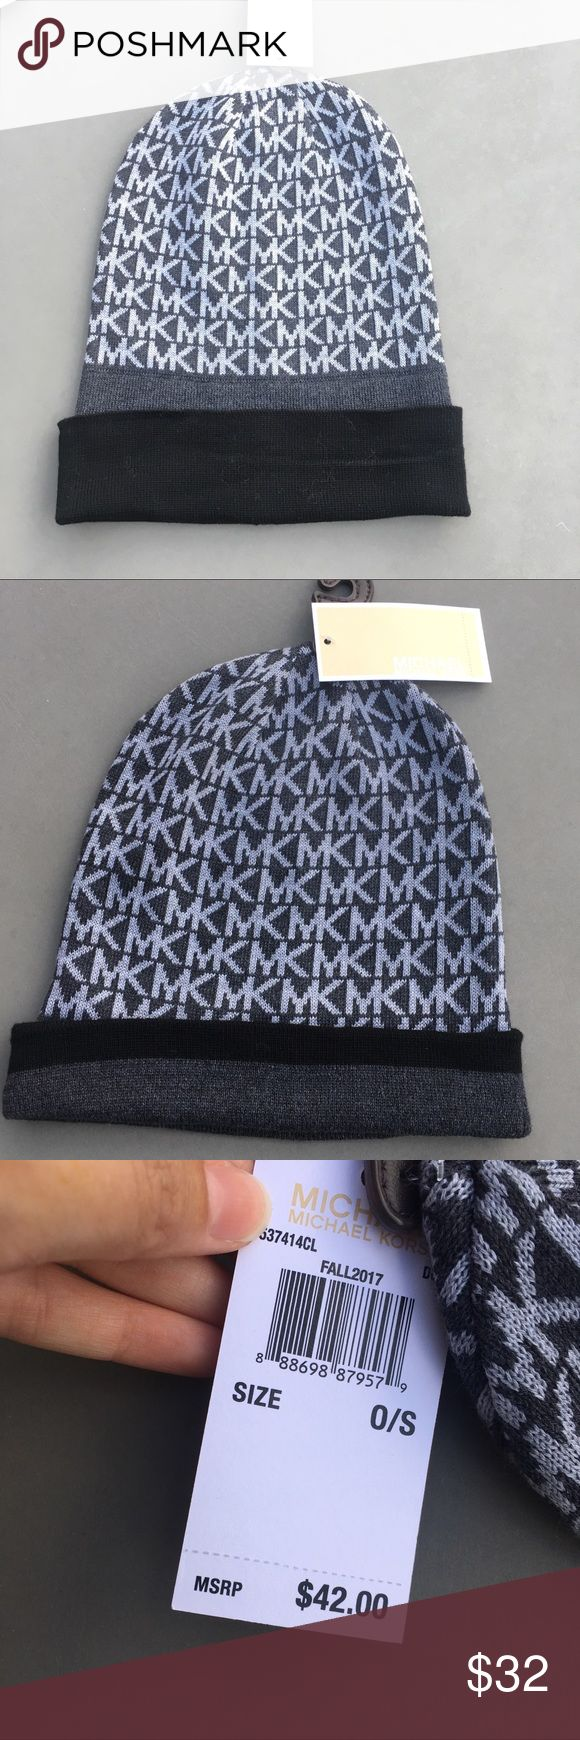 Authentic Michael Kors Beanie Winter Hat NWT Selling an authentic Michael Kors beanie. Great for winter and fall! Wonderful gift or Christmas present idea! I️ also have the matching scarf available! Bundle to save! No trades MICHAEL Michael Kors Accessories